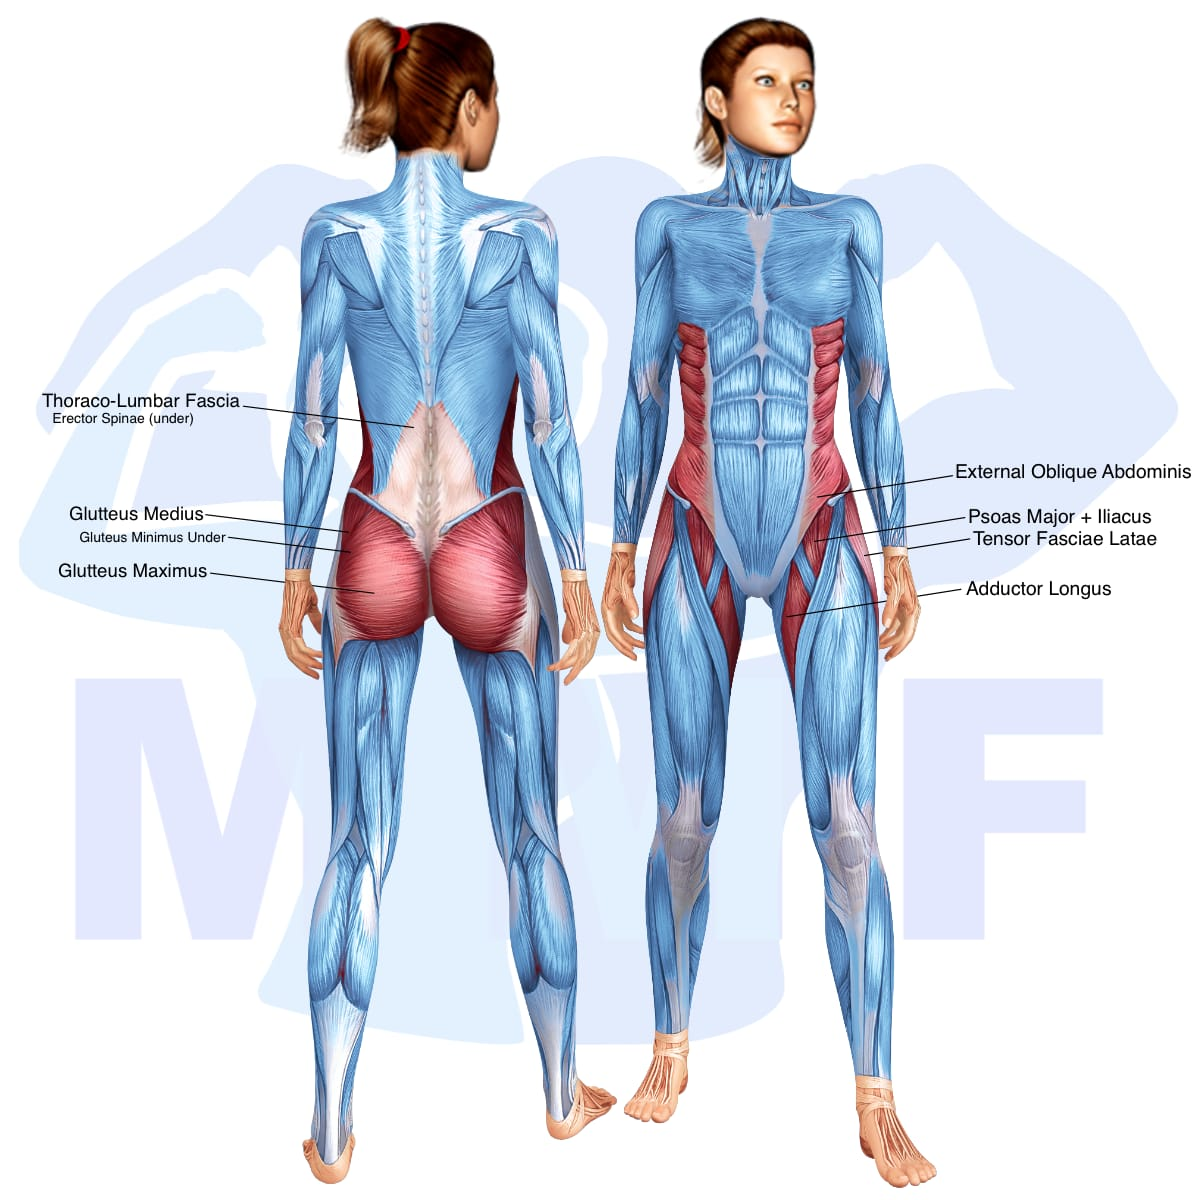 Skeletal muscle systems for a muscular woman, with muscles highlighted in red that are use during resistance band pull down standing twists.